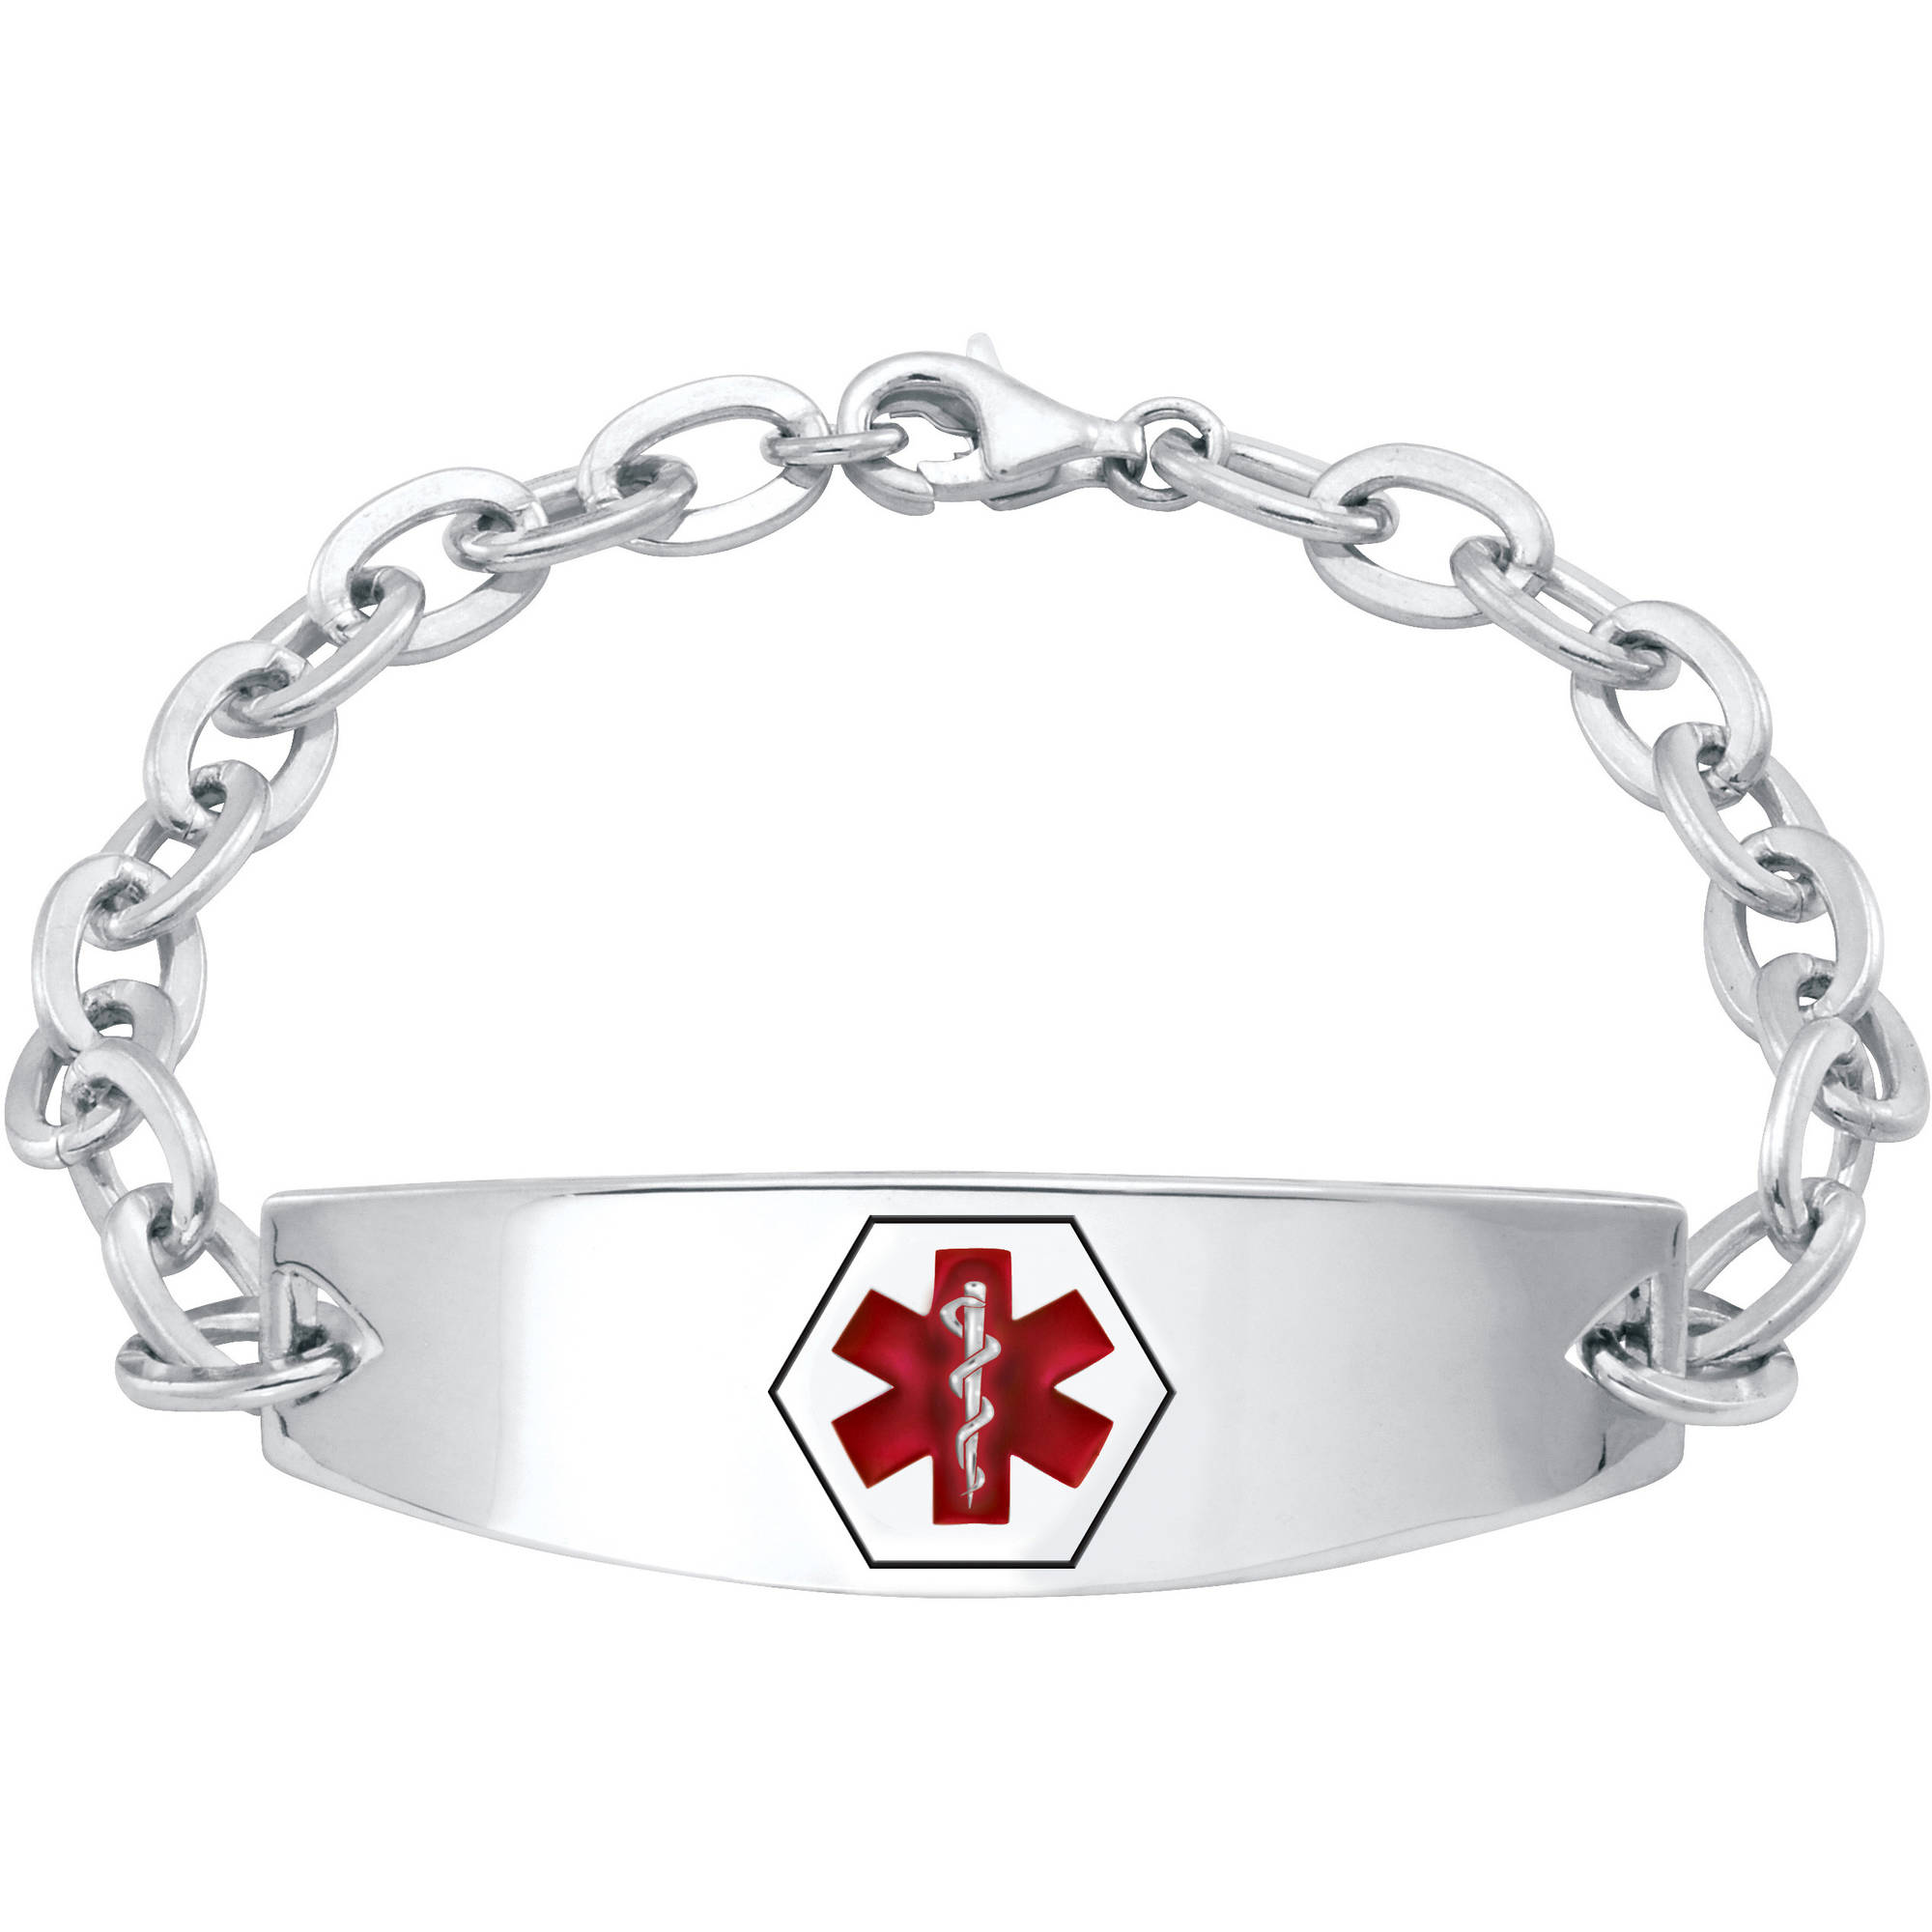 Personalized Keepsake Women's Medical ID Bracelet